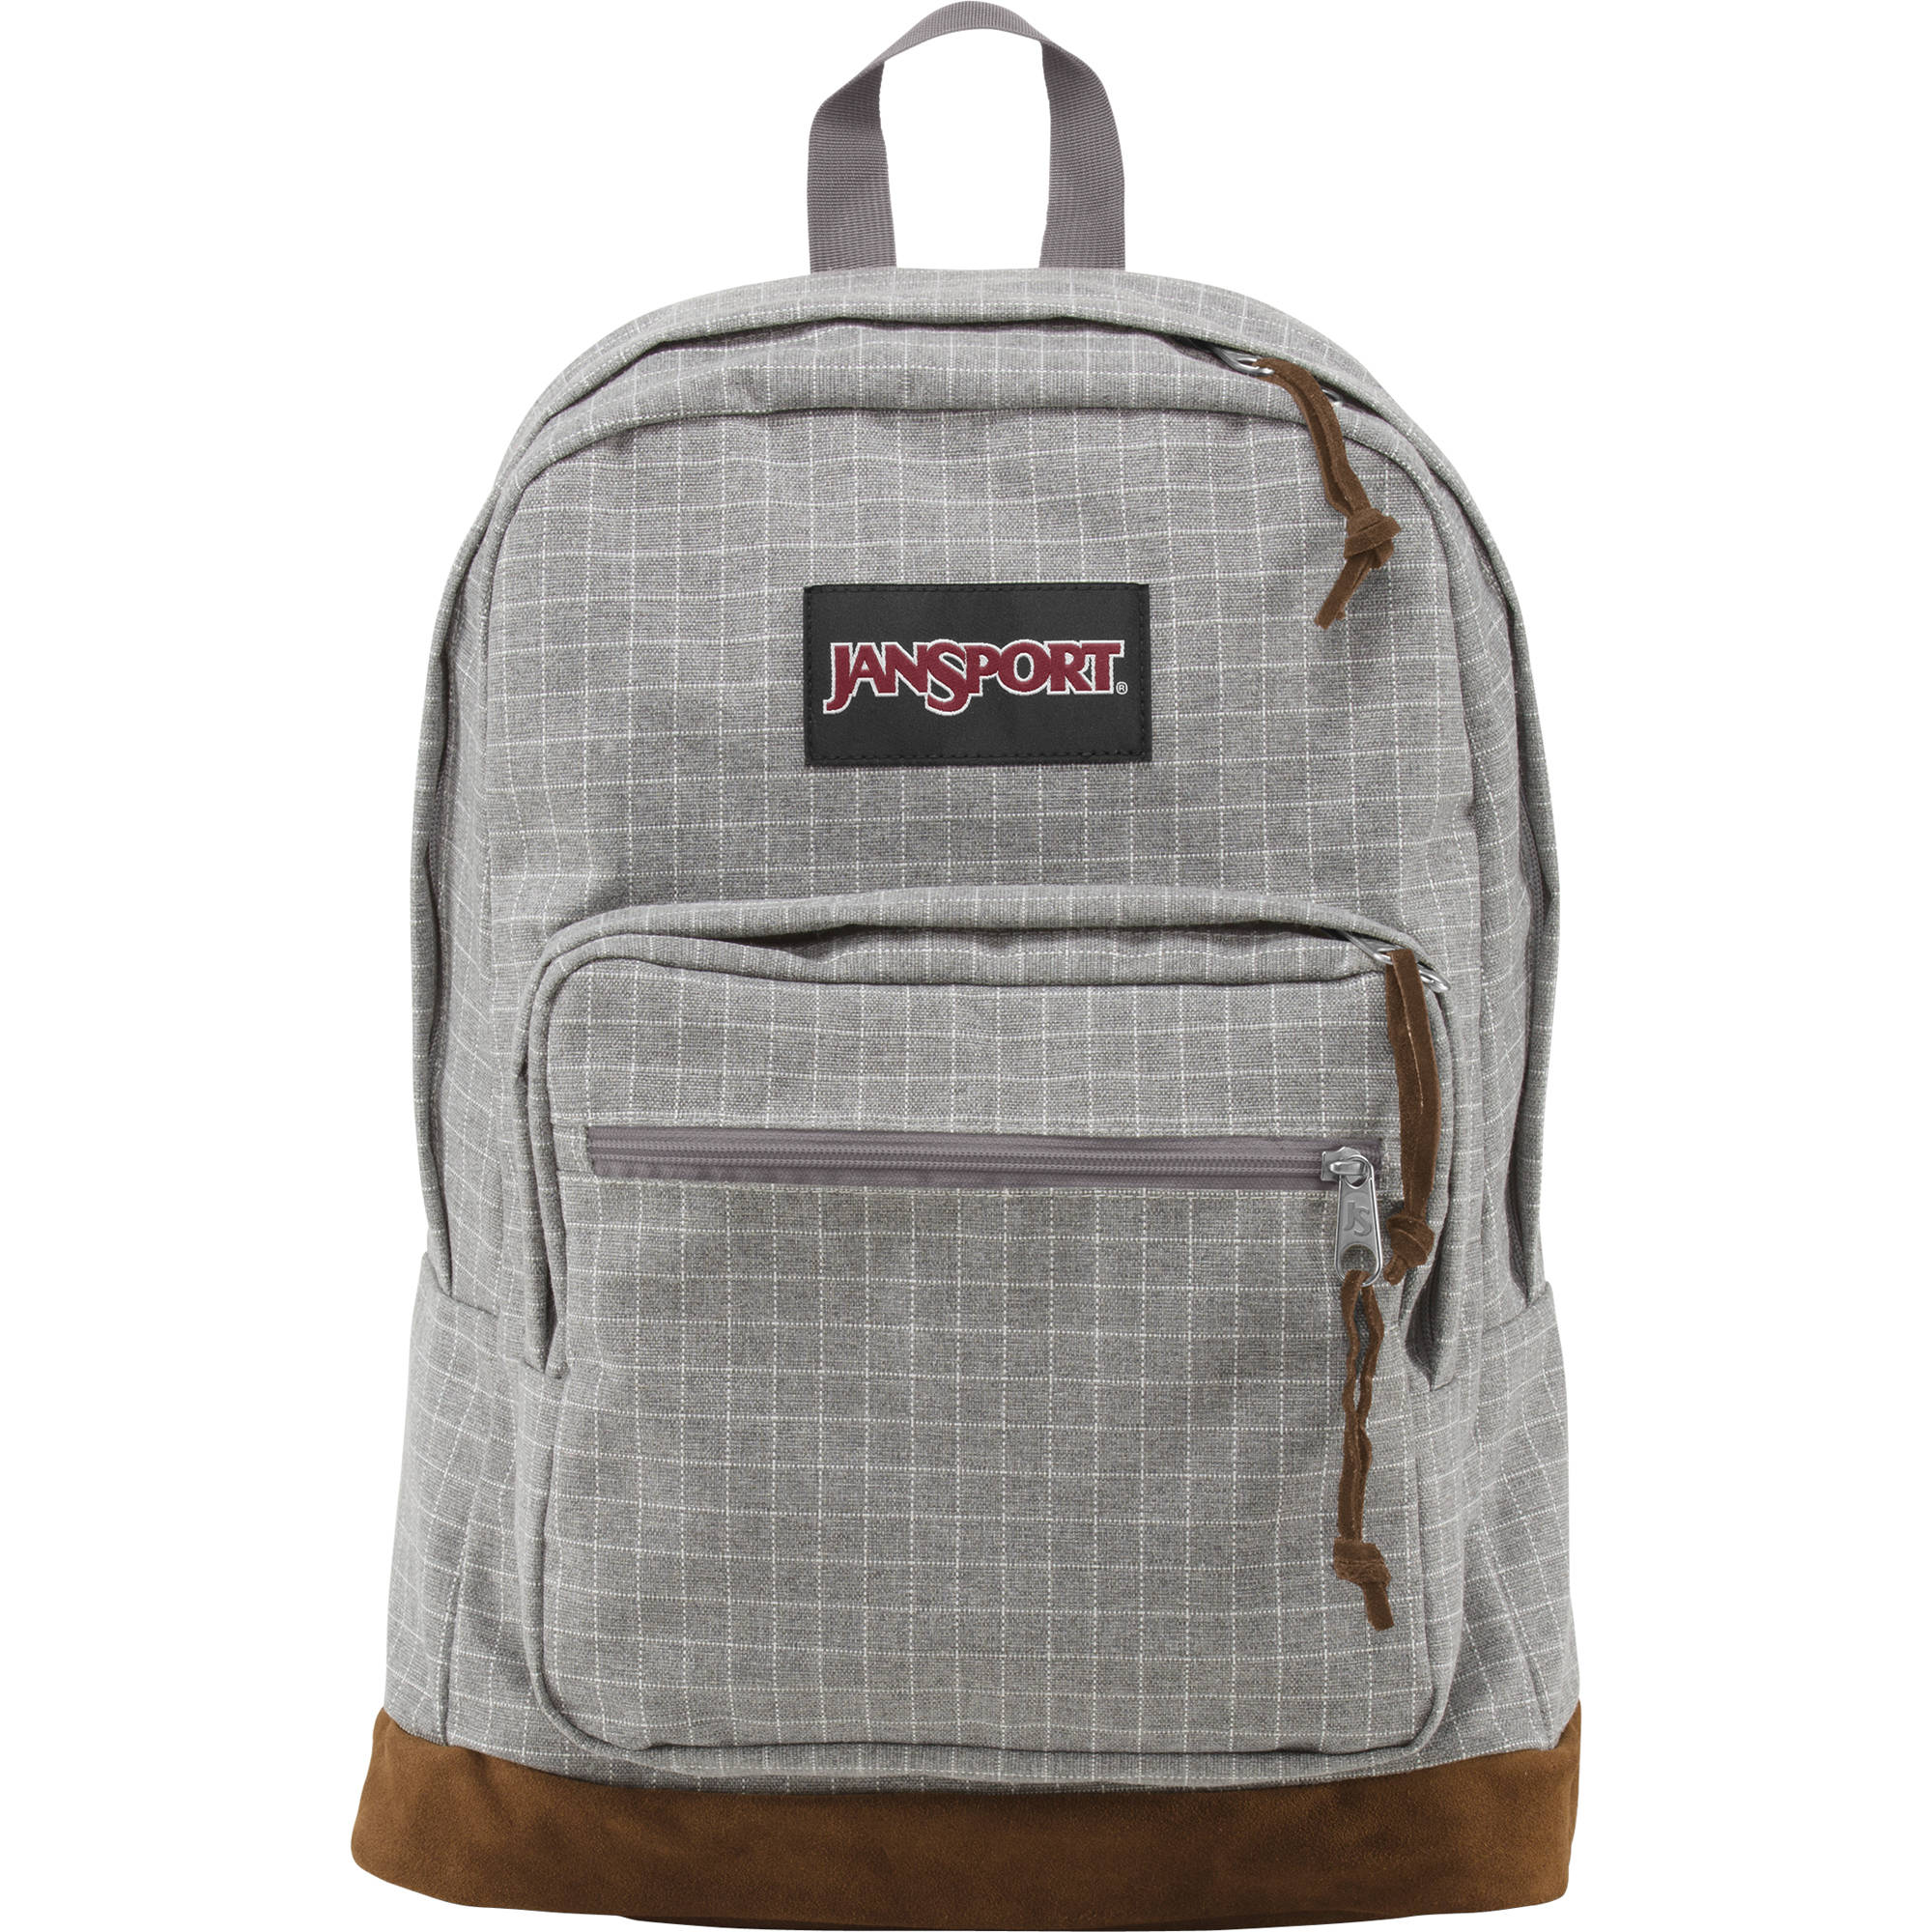 6a1e90a010 JanSport Right Pack Expressions Backpack (Gray Squared) TZR604M